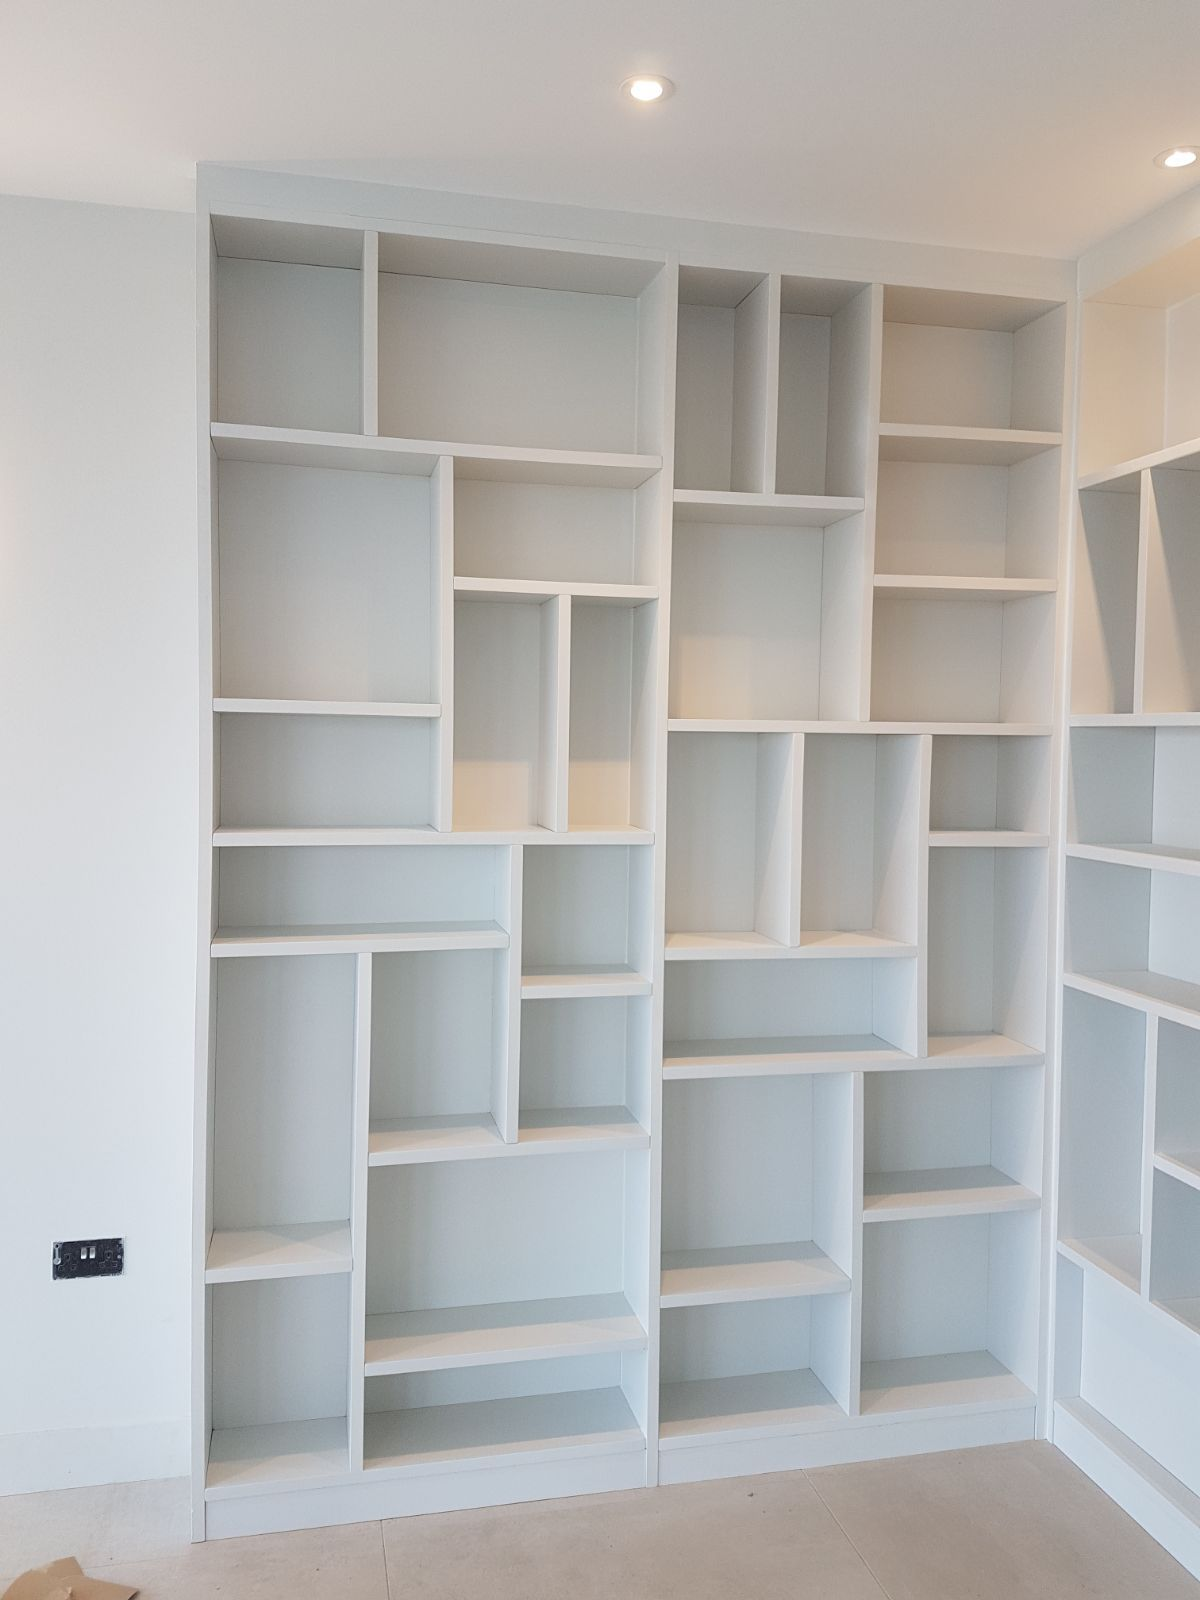 25Mm Thick Chunky Shelving Unit